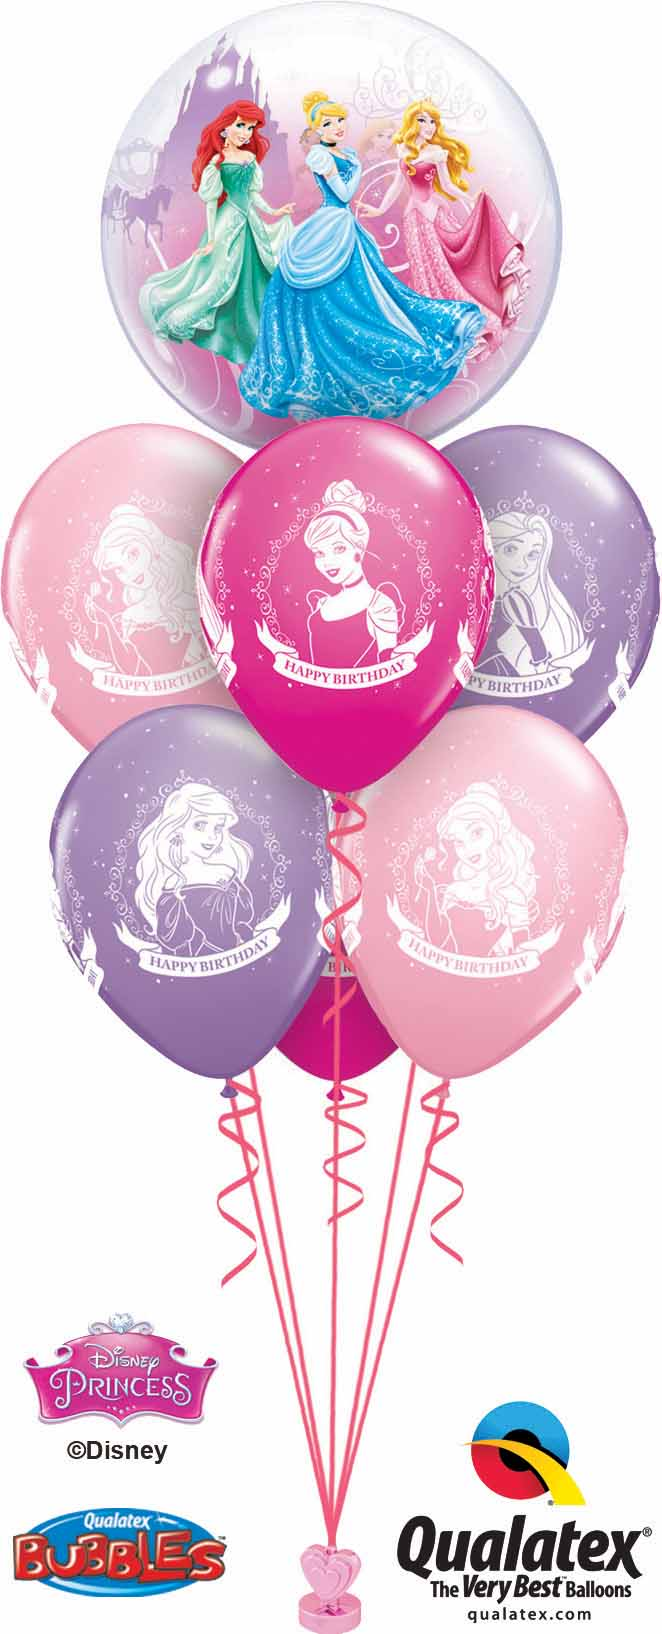 41191 18684 Disney Princess Birthday Luxury